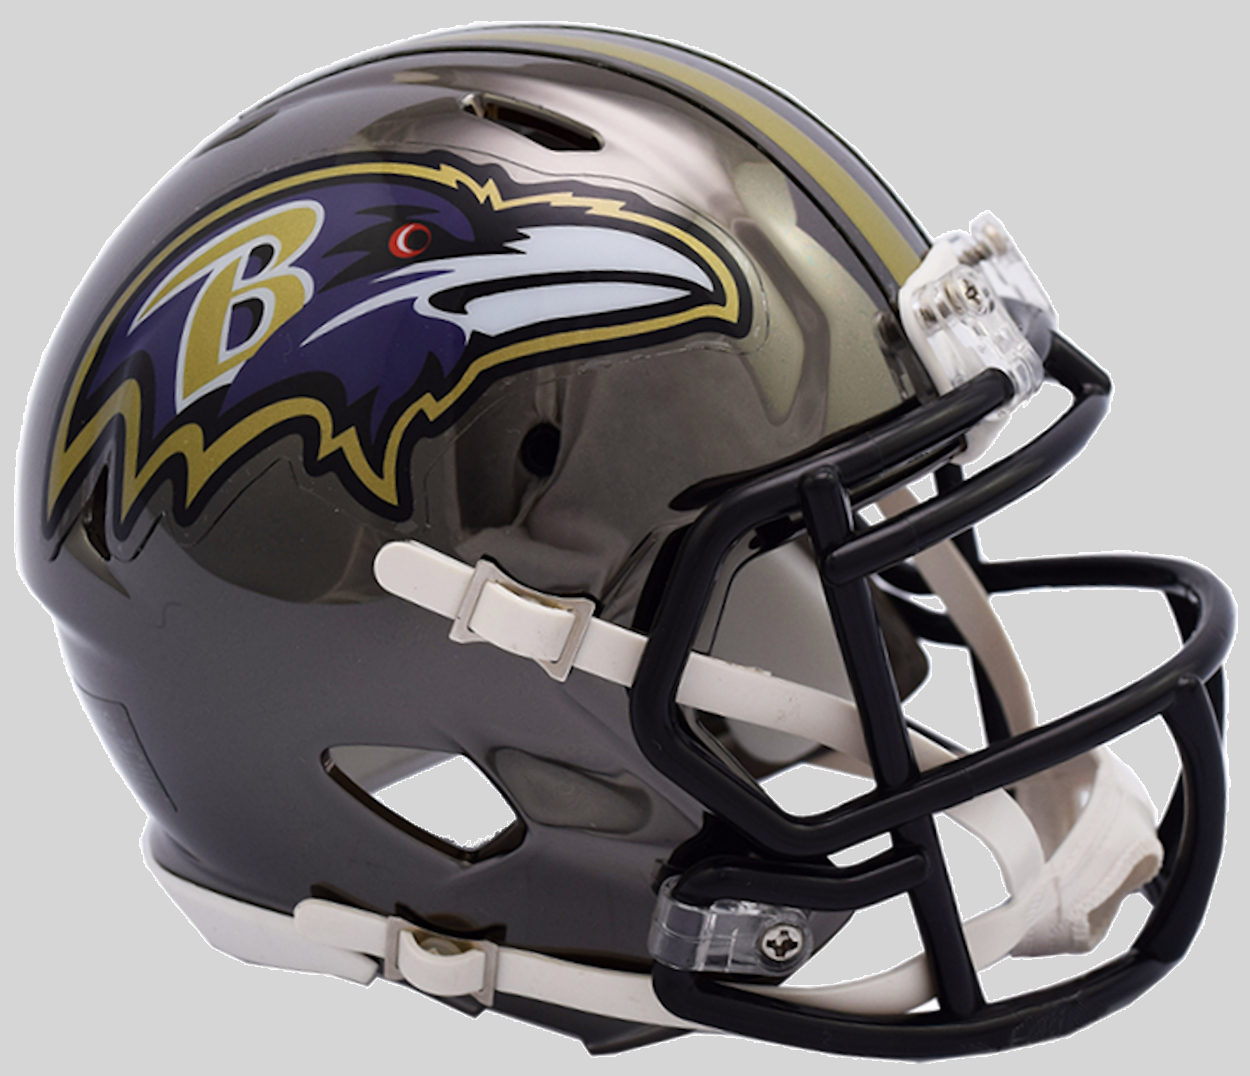 cec486d98 Baltimore Ravens Authentic Full Size Chrome Speed Helmet - 2018 ...